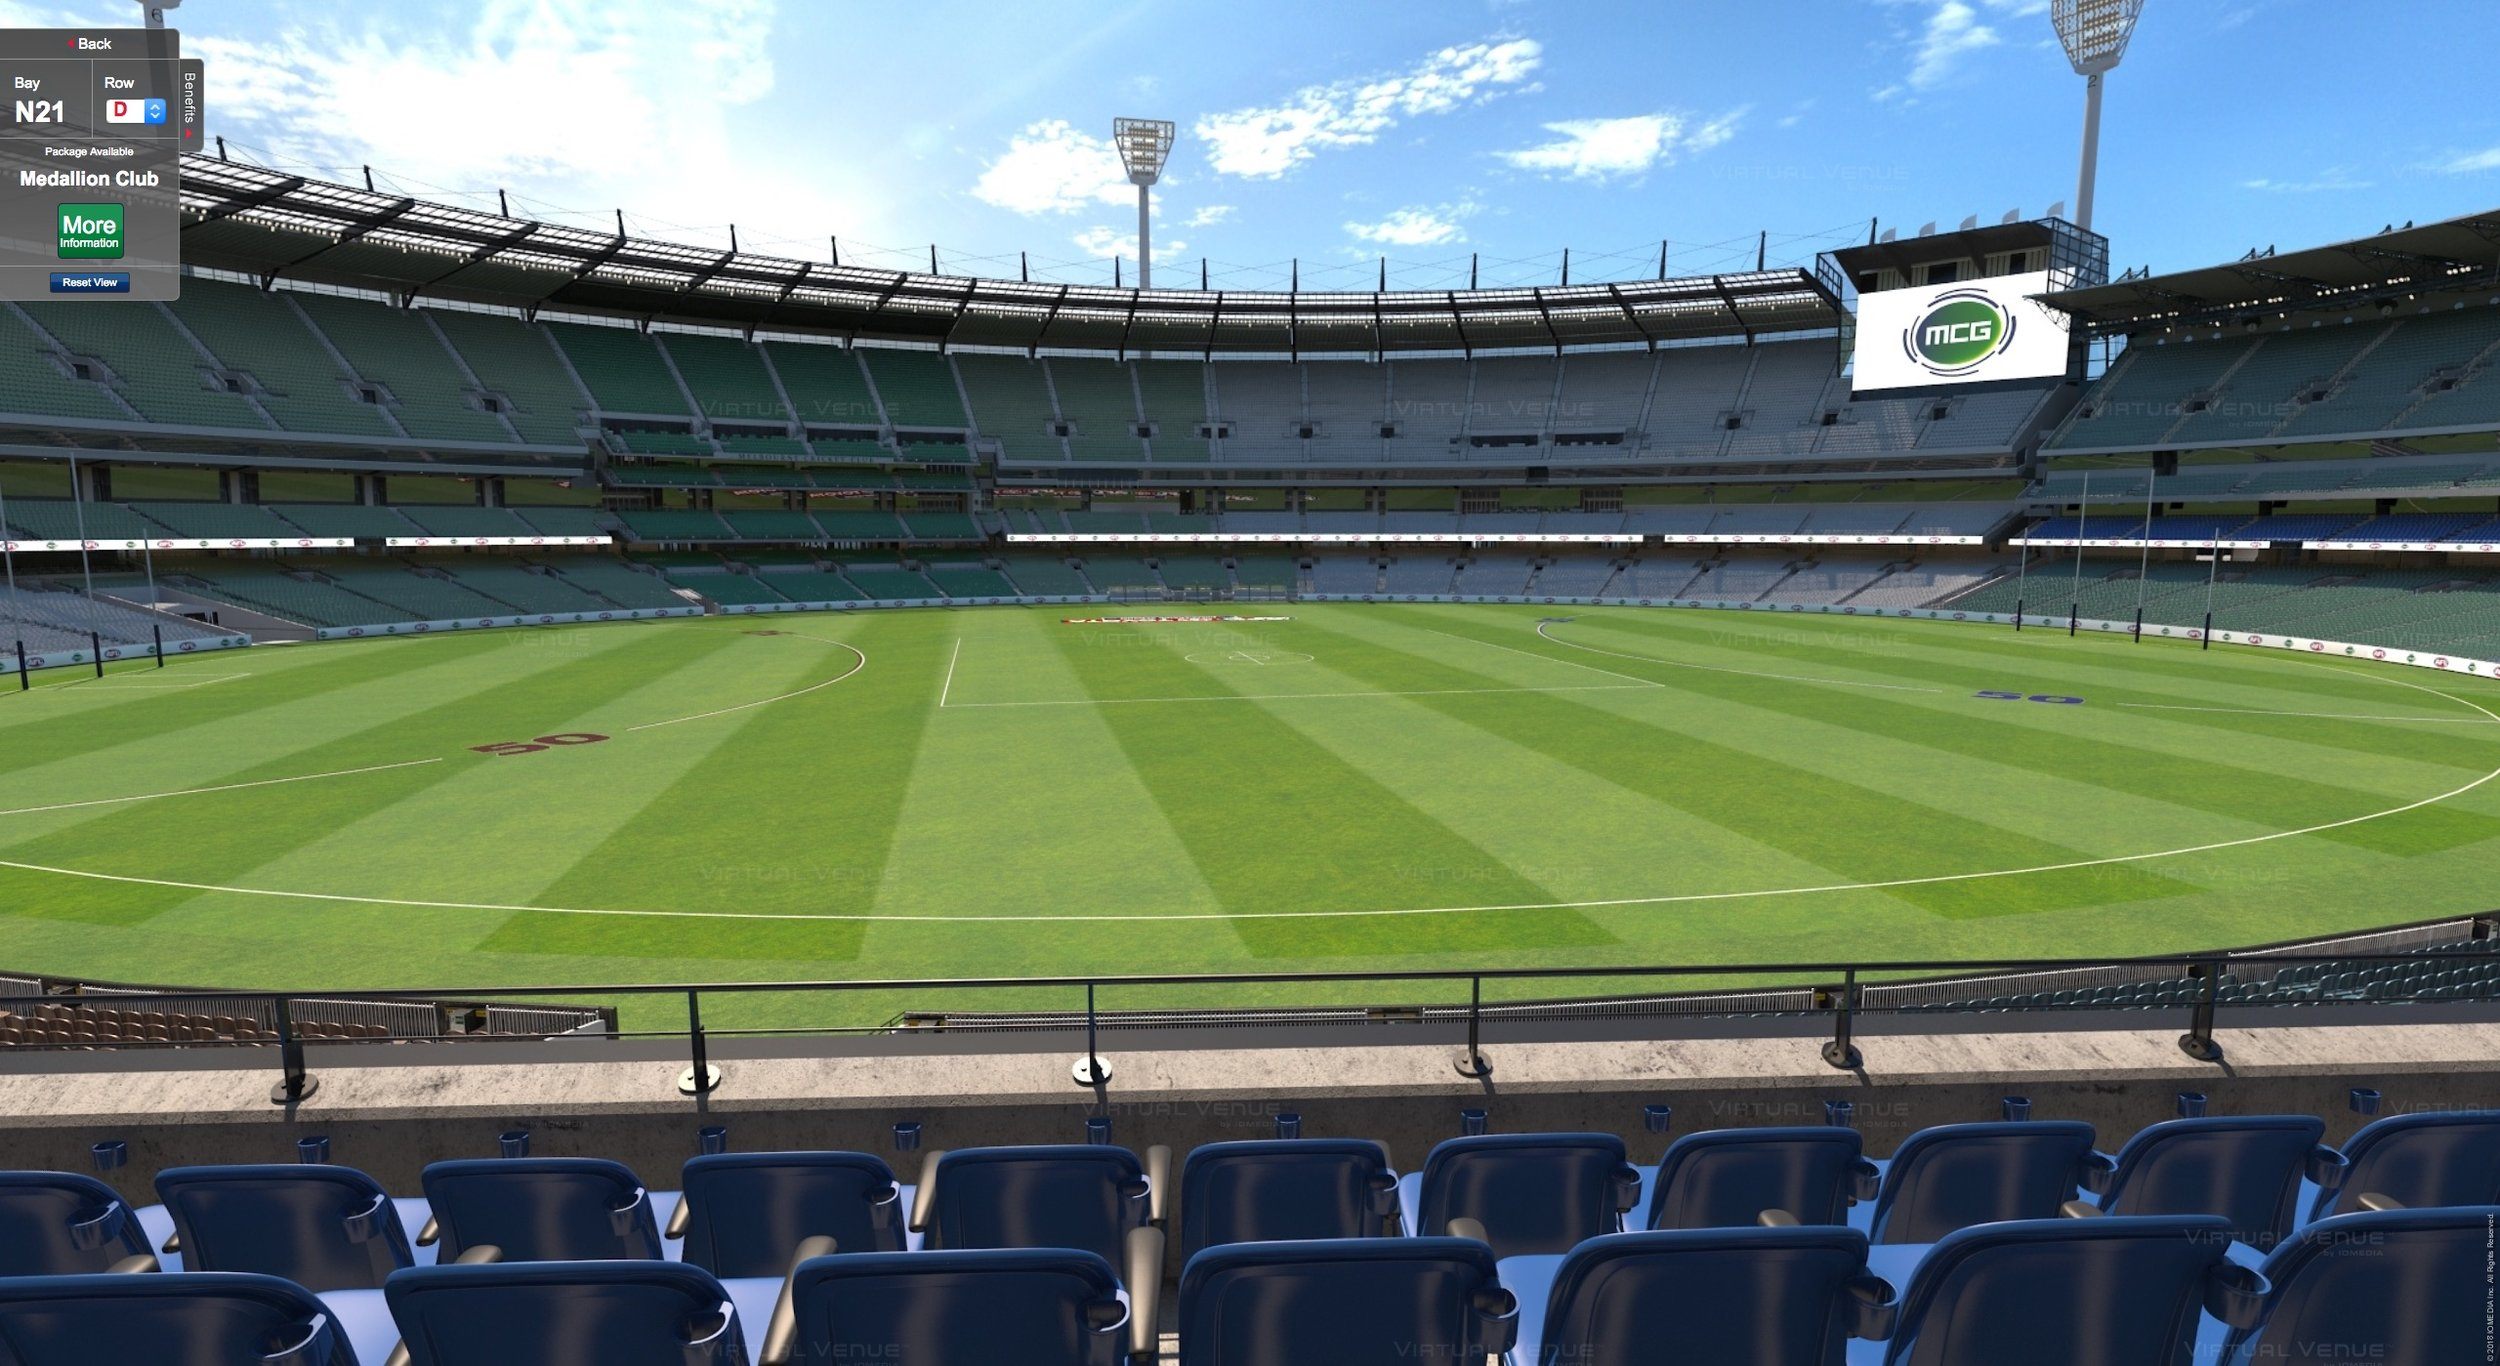 Geelong v Hawthorn MCG Medallion Club seating